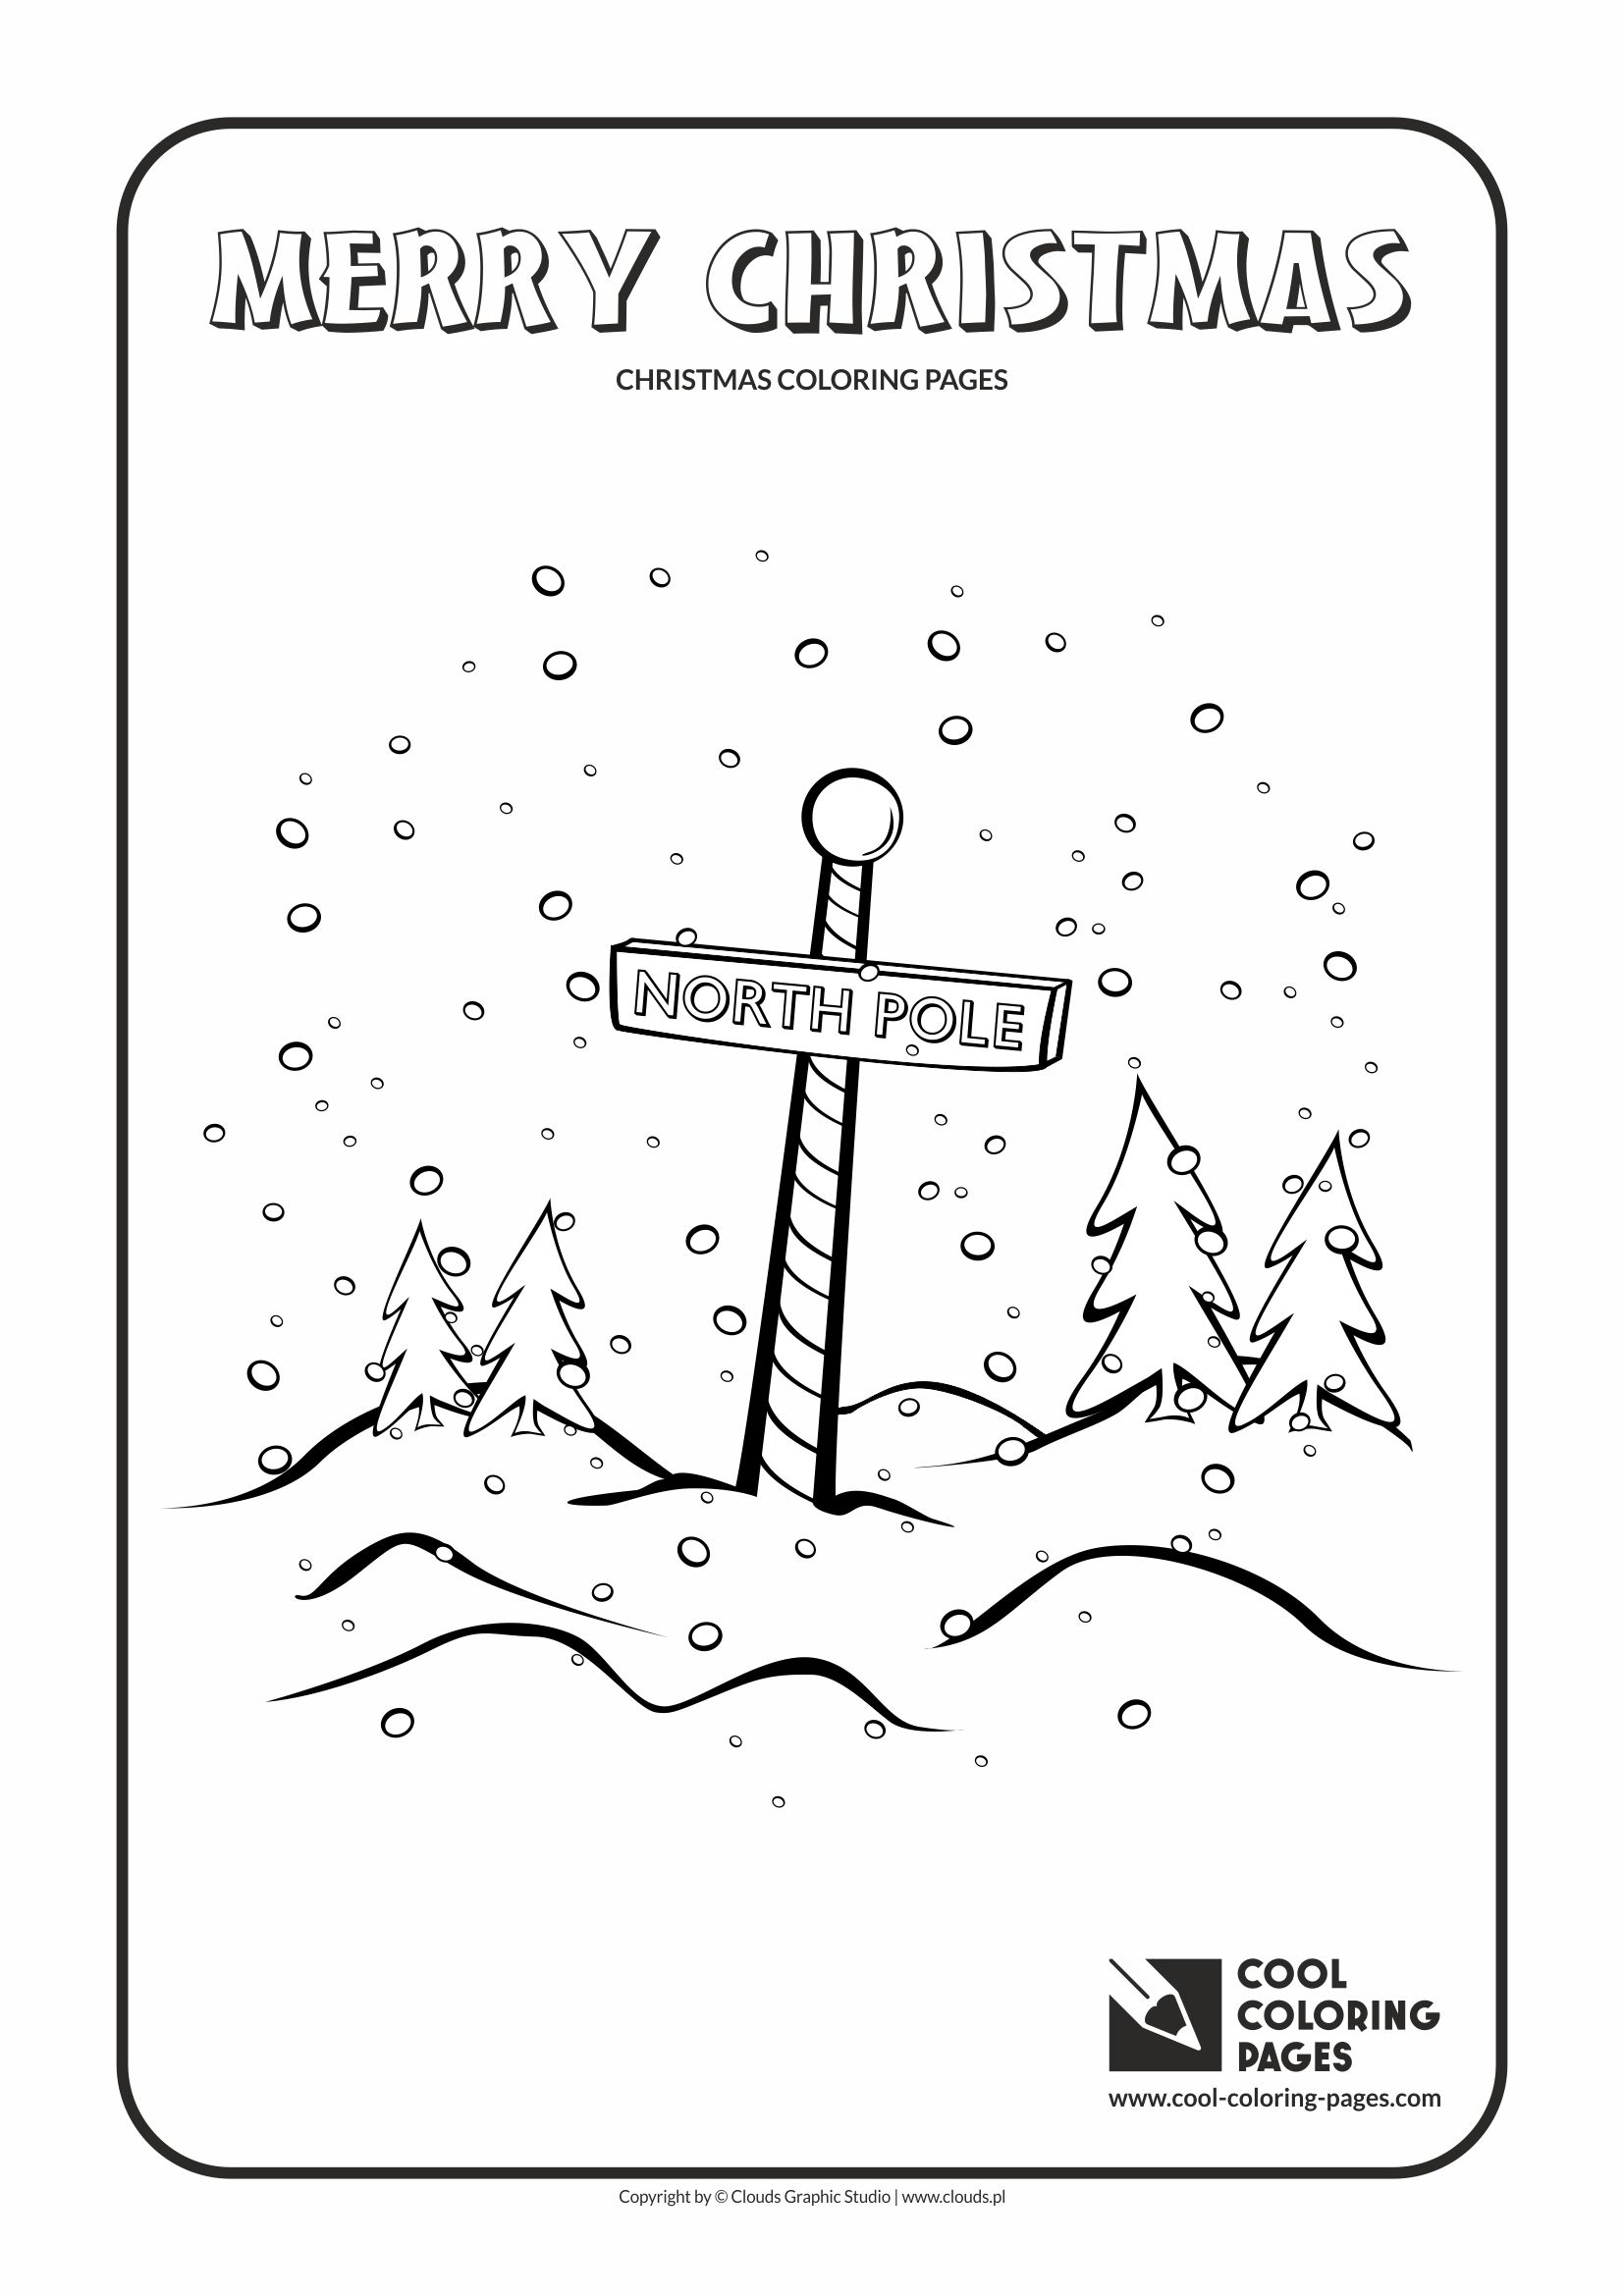 Cool Coloring Pages - Holidays / North Pole no 1 / Coloring page with North Pole no 1